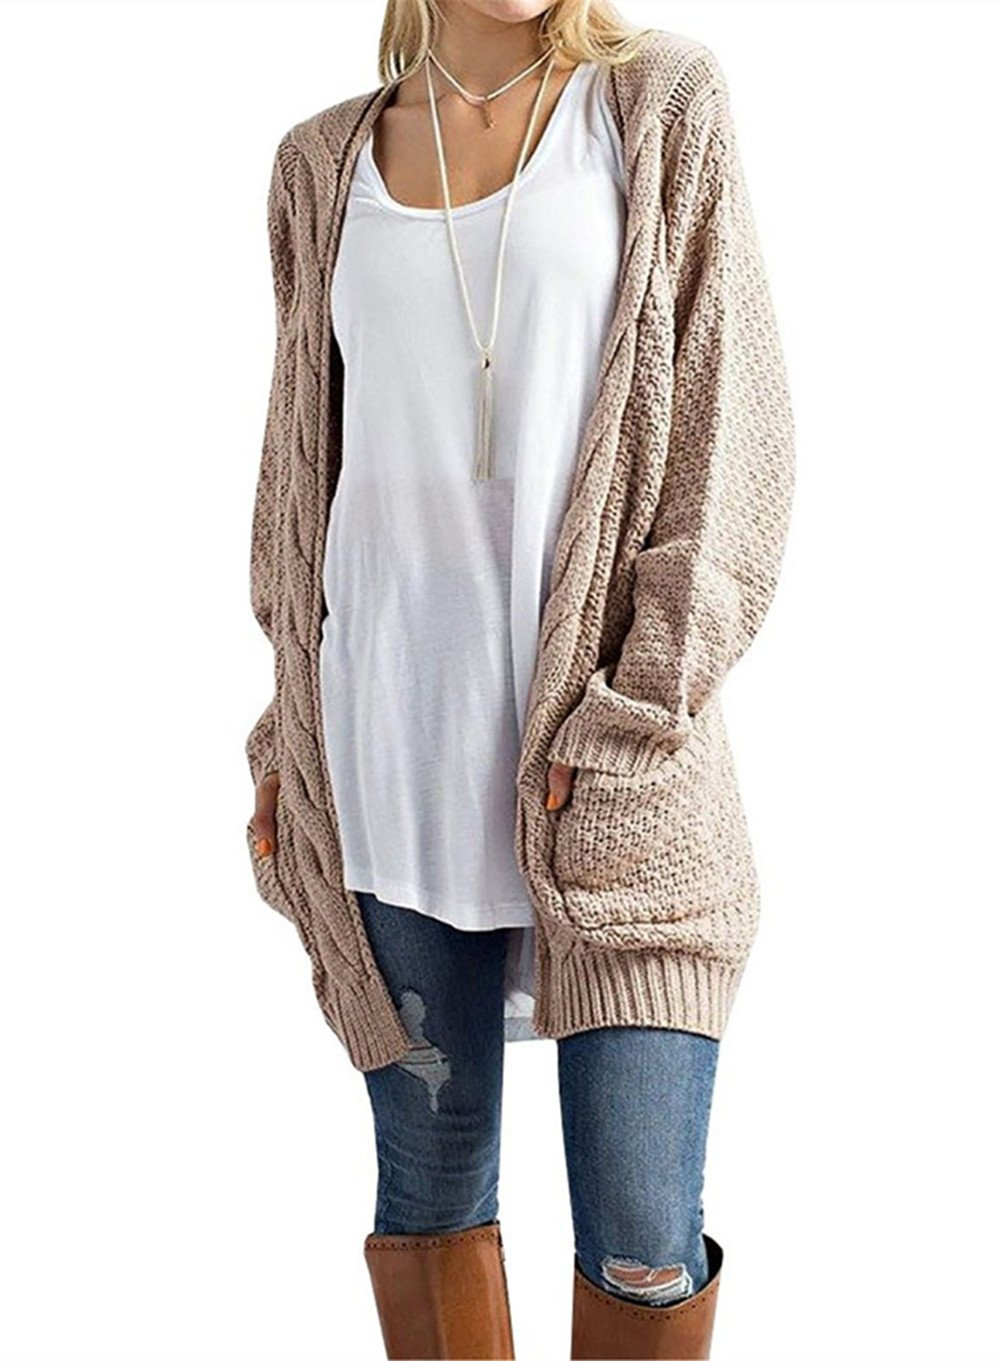 AMAURAS Women Cable Knit Open Front Sweater Cardigan Warm Jacket Coat Casual Outerwear